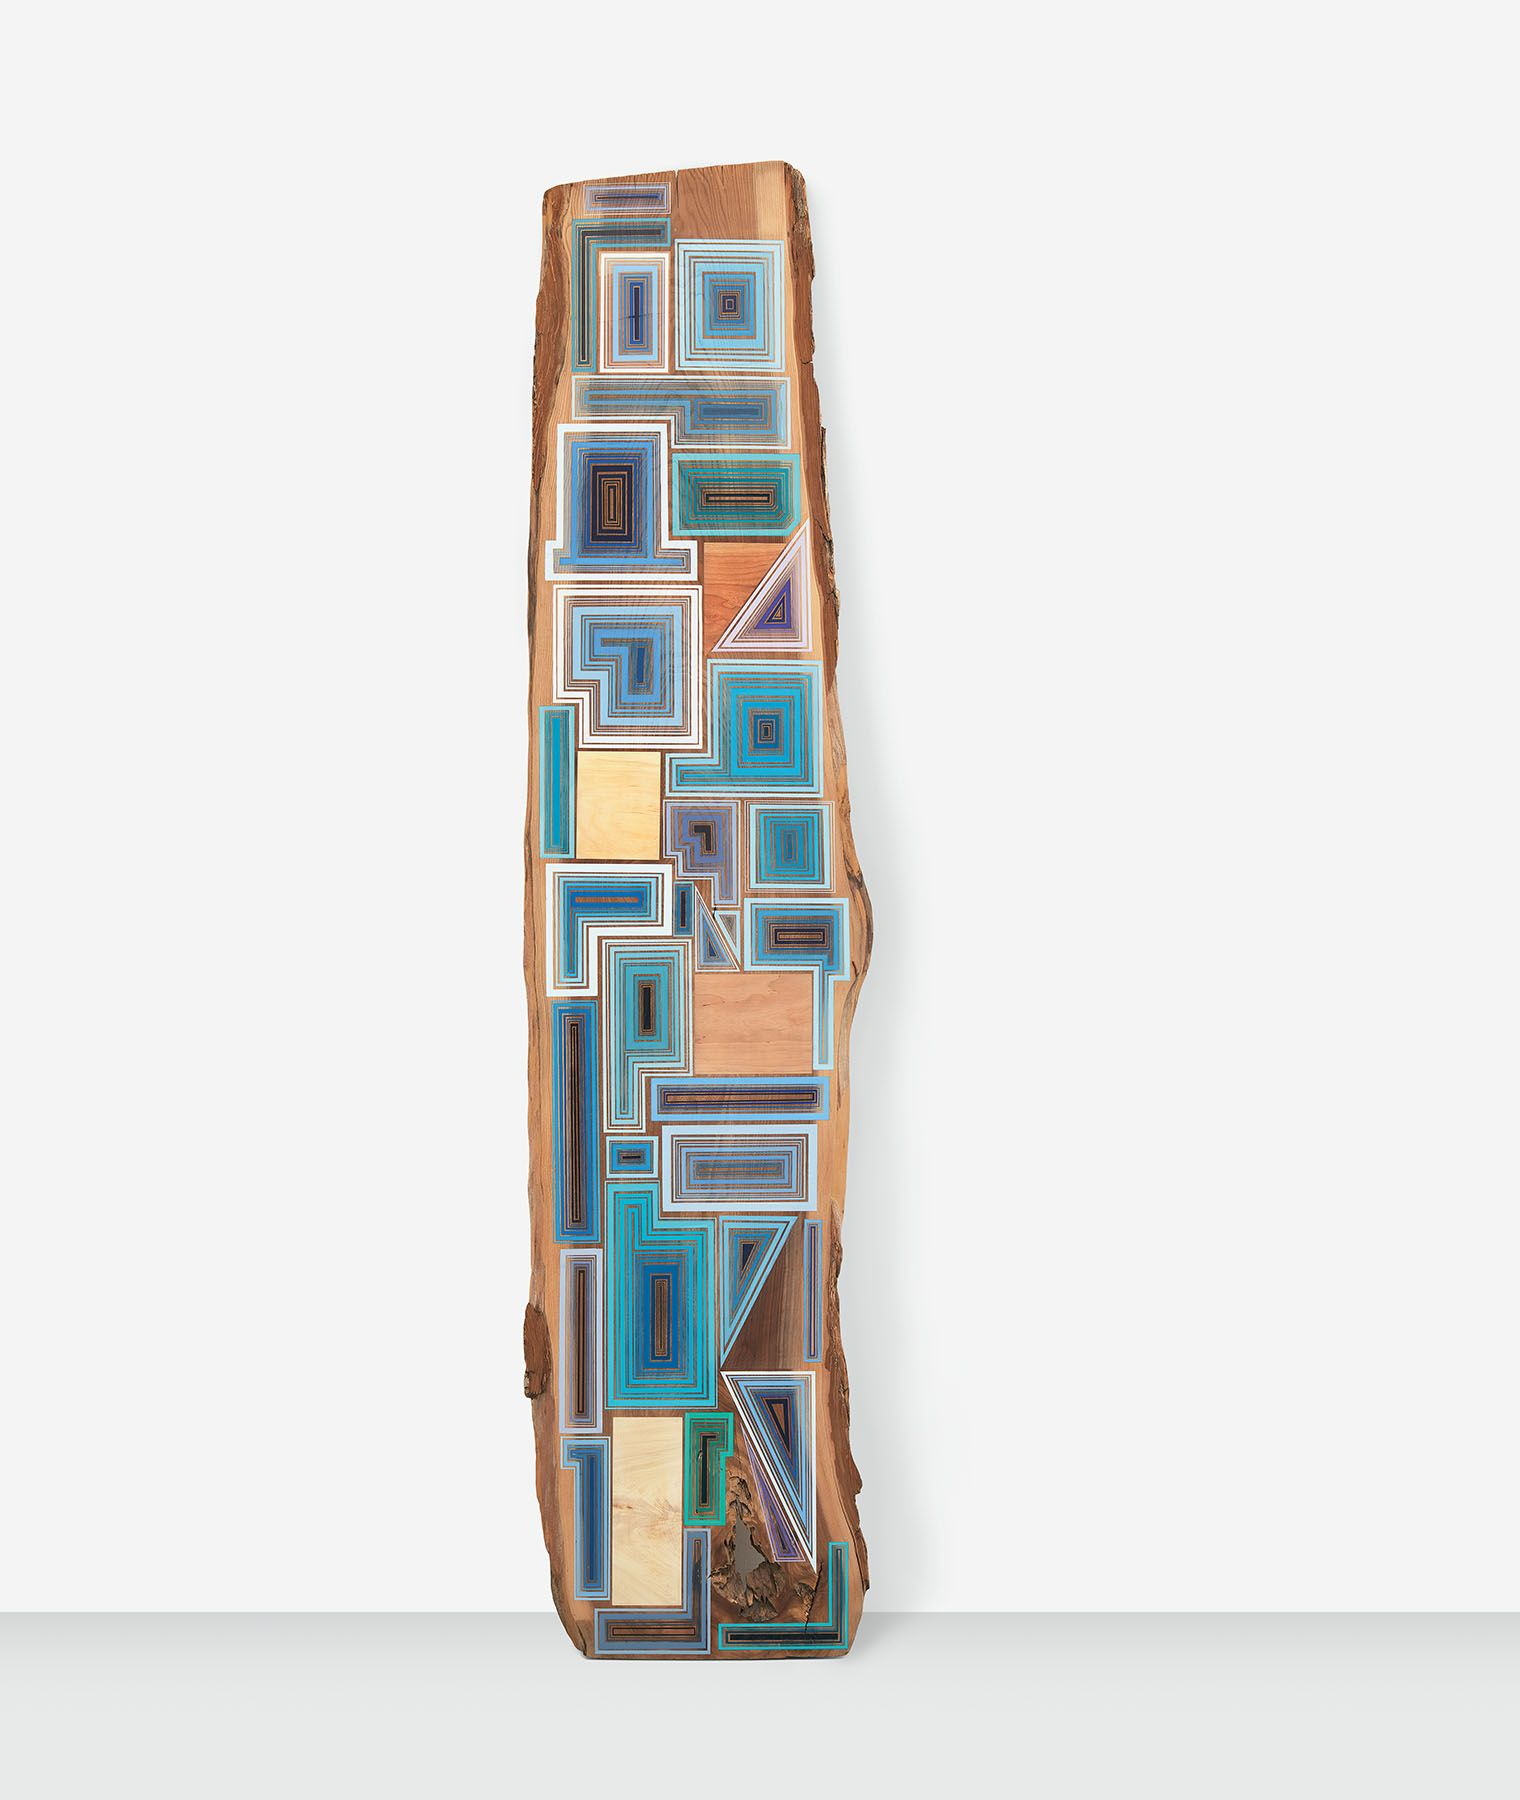 Forty Blues, 2018, Acrylic and wax on cherry, 102 x 25 x 1 inches, 259.1 x 63.5 x 2.5 cm, MMG#30718